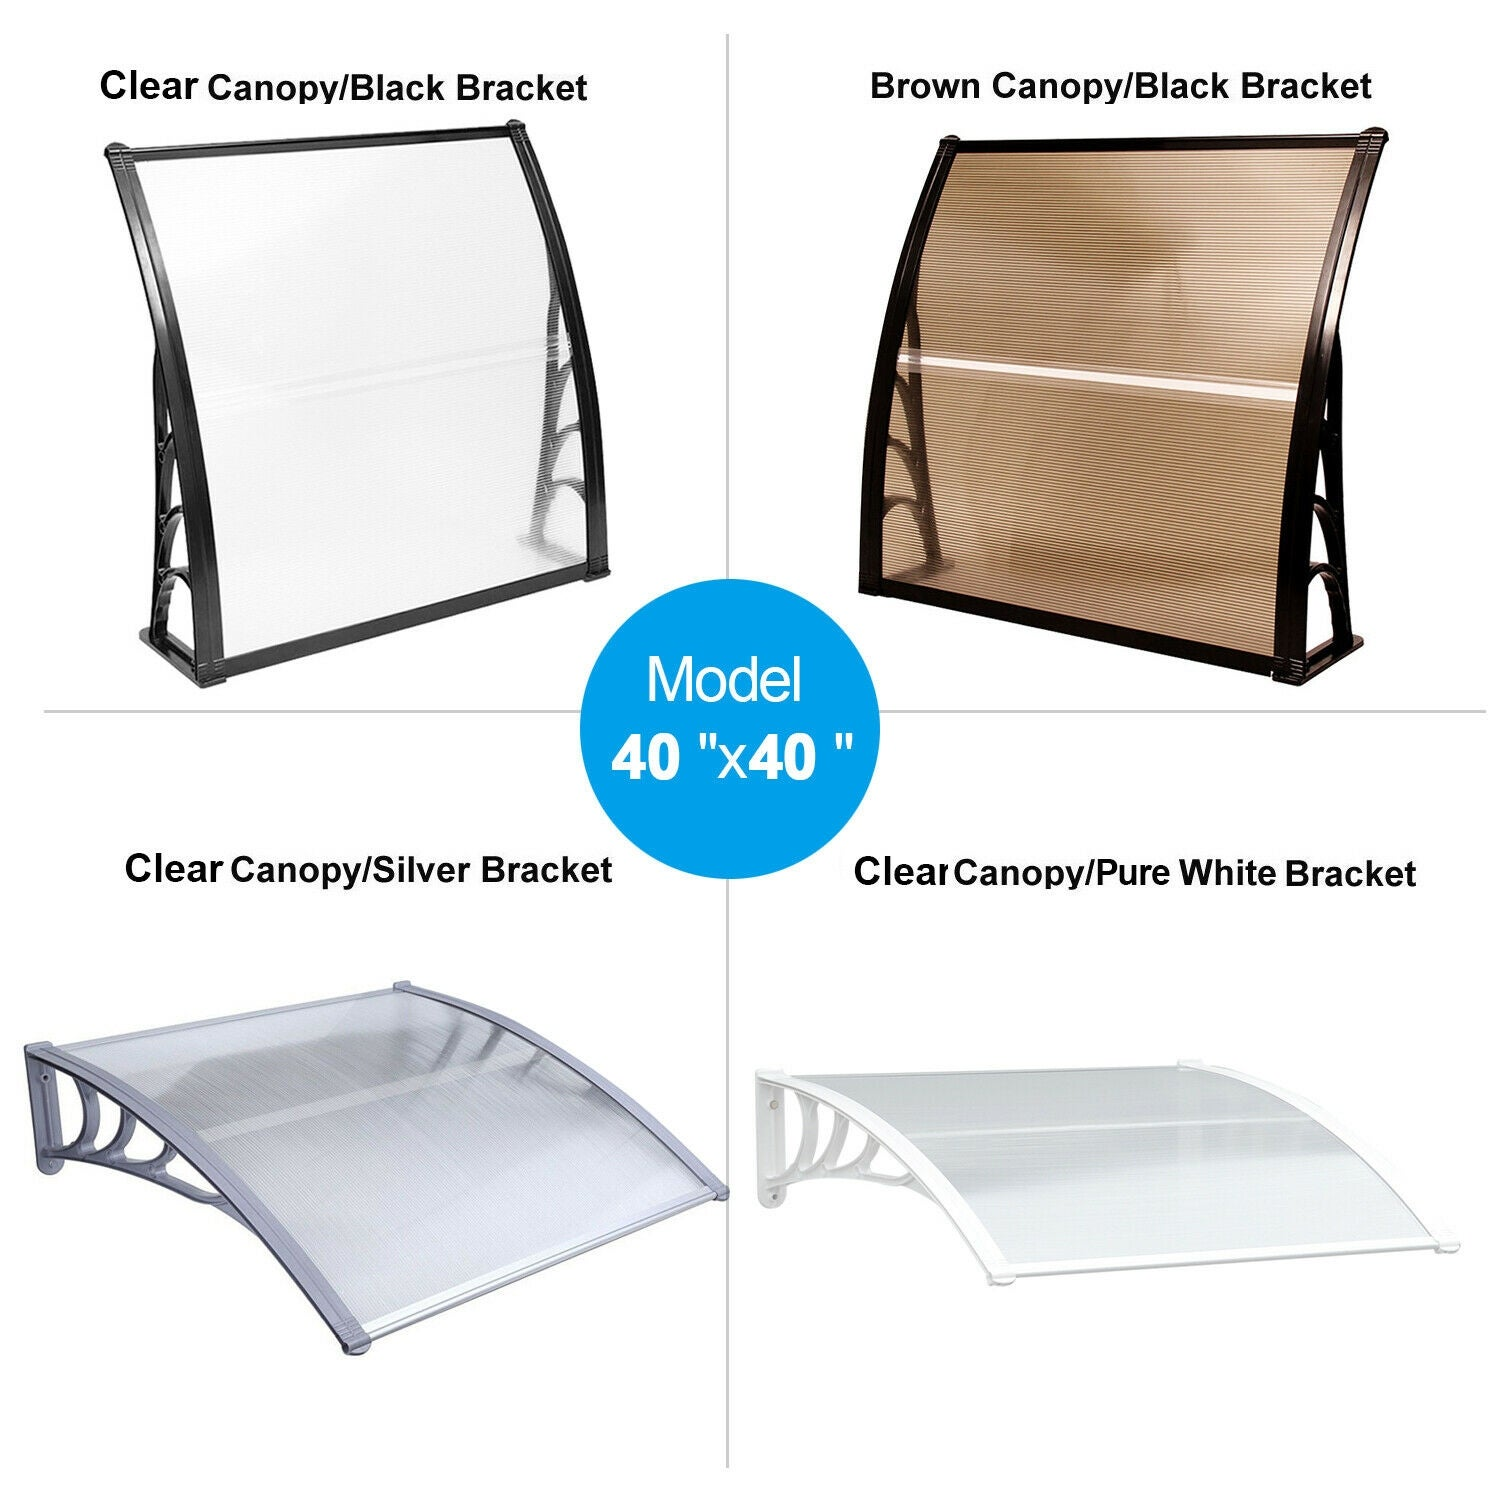 MCombo 40×40 FT Window Awning Polycarbonate Cover - 38.6(W)x 39(L) x 11(H) (Black)